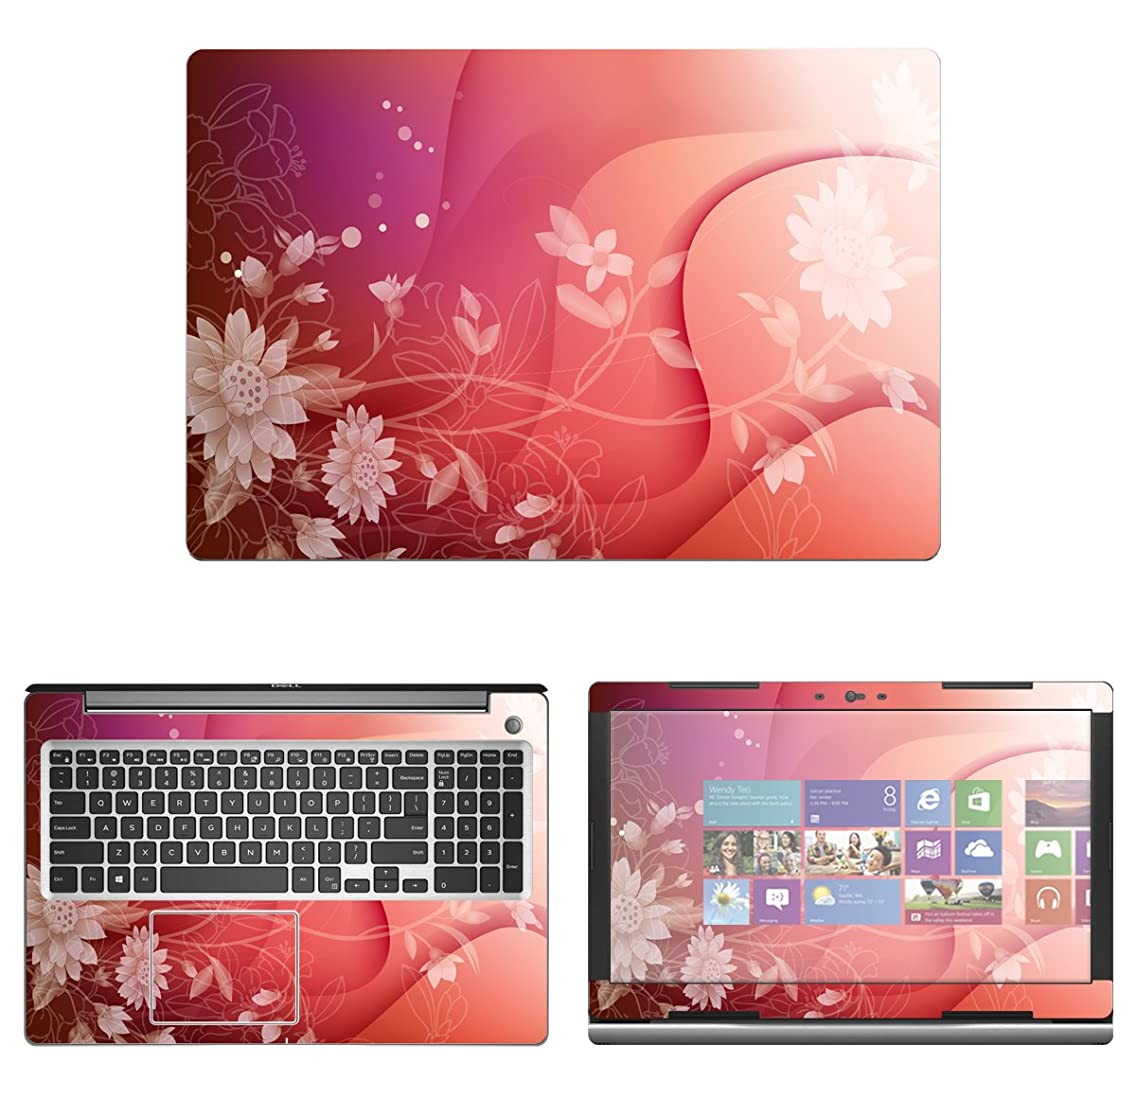 decalrus - Protective Decal Floral Skin Sticker for Dell Inspiron 15 i5570 / 5570 (15.6